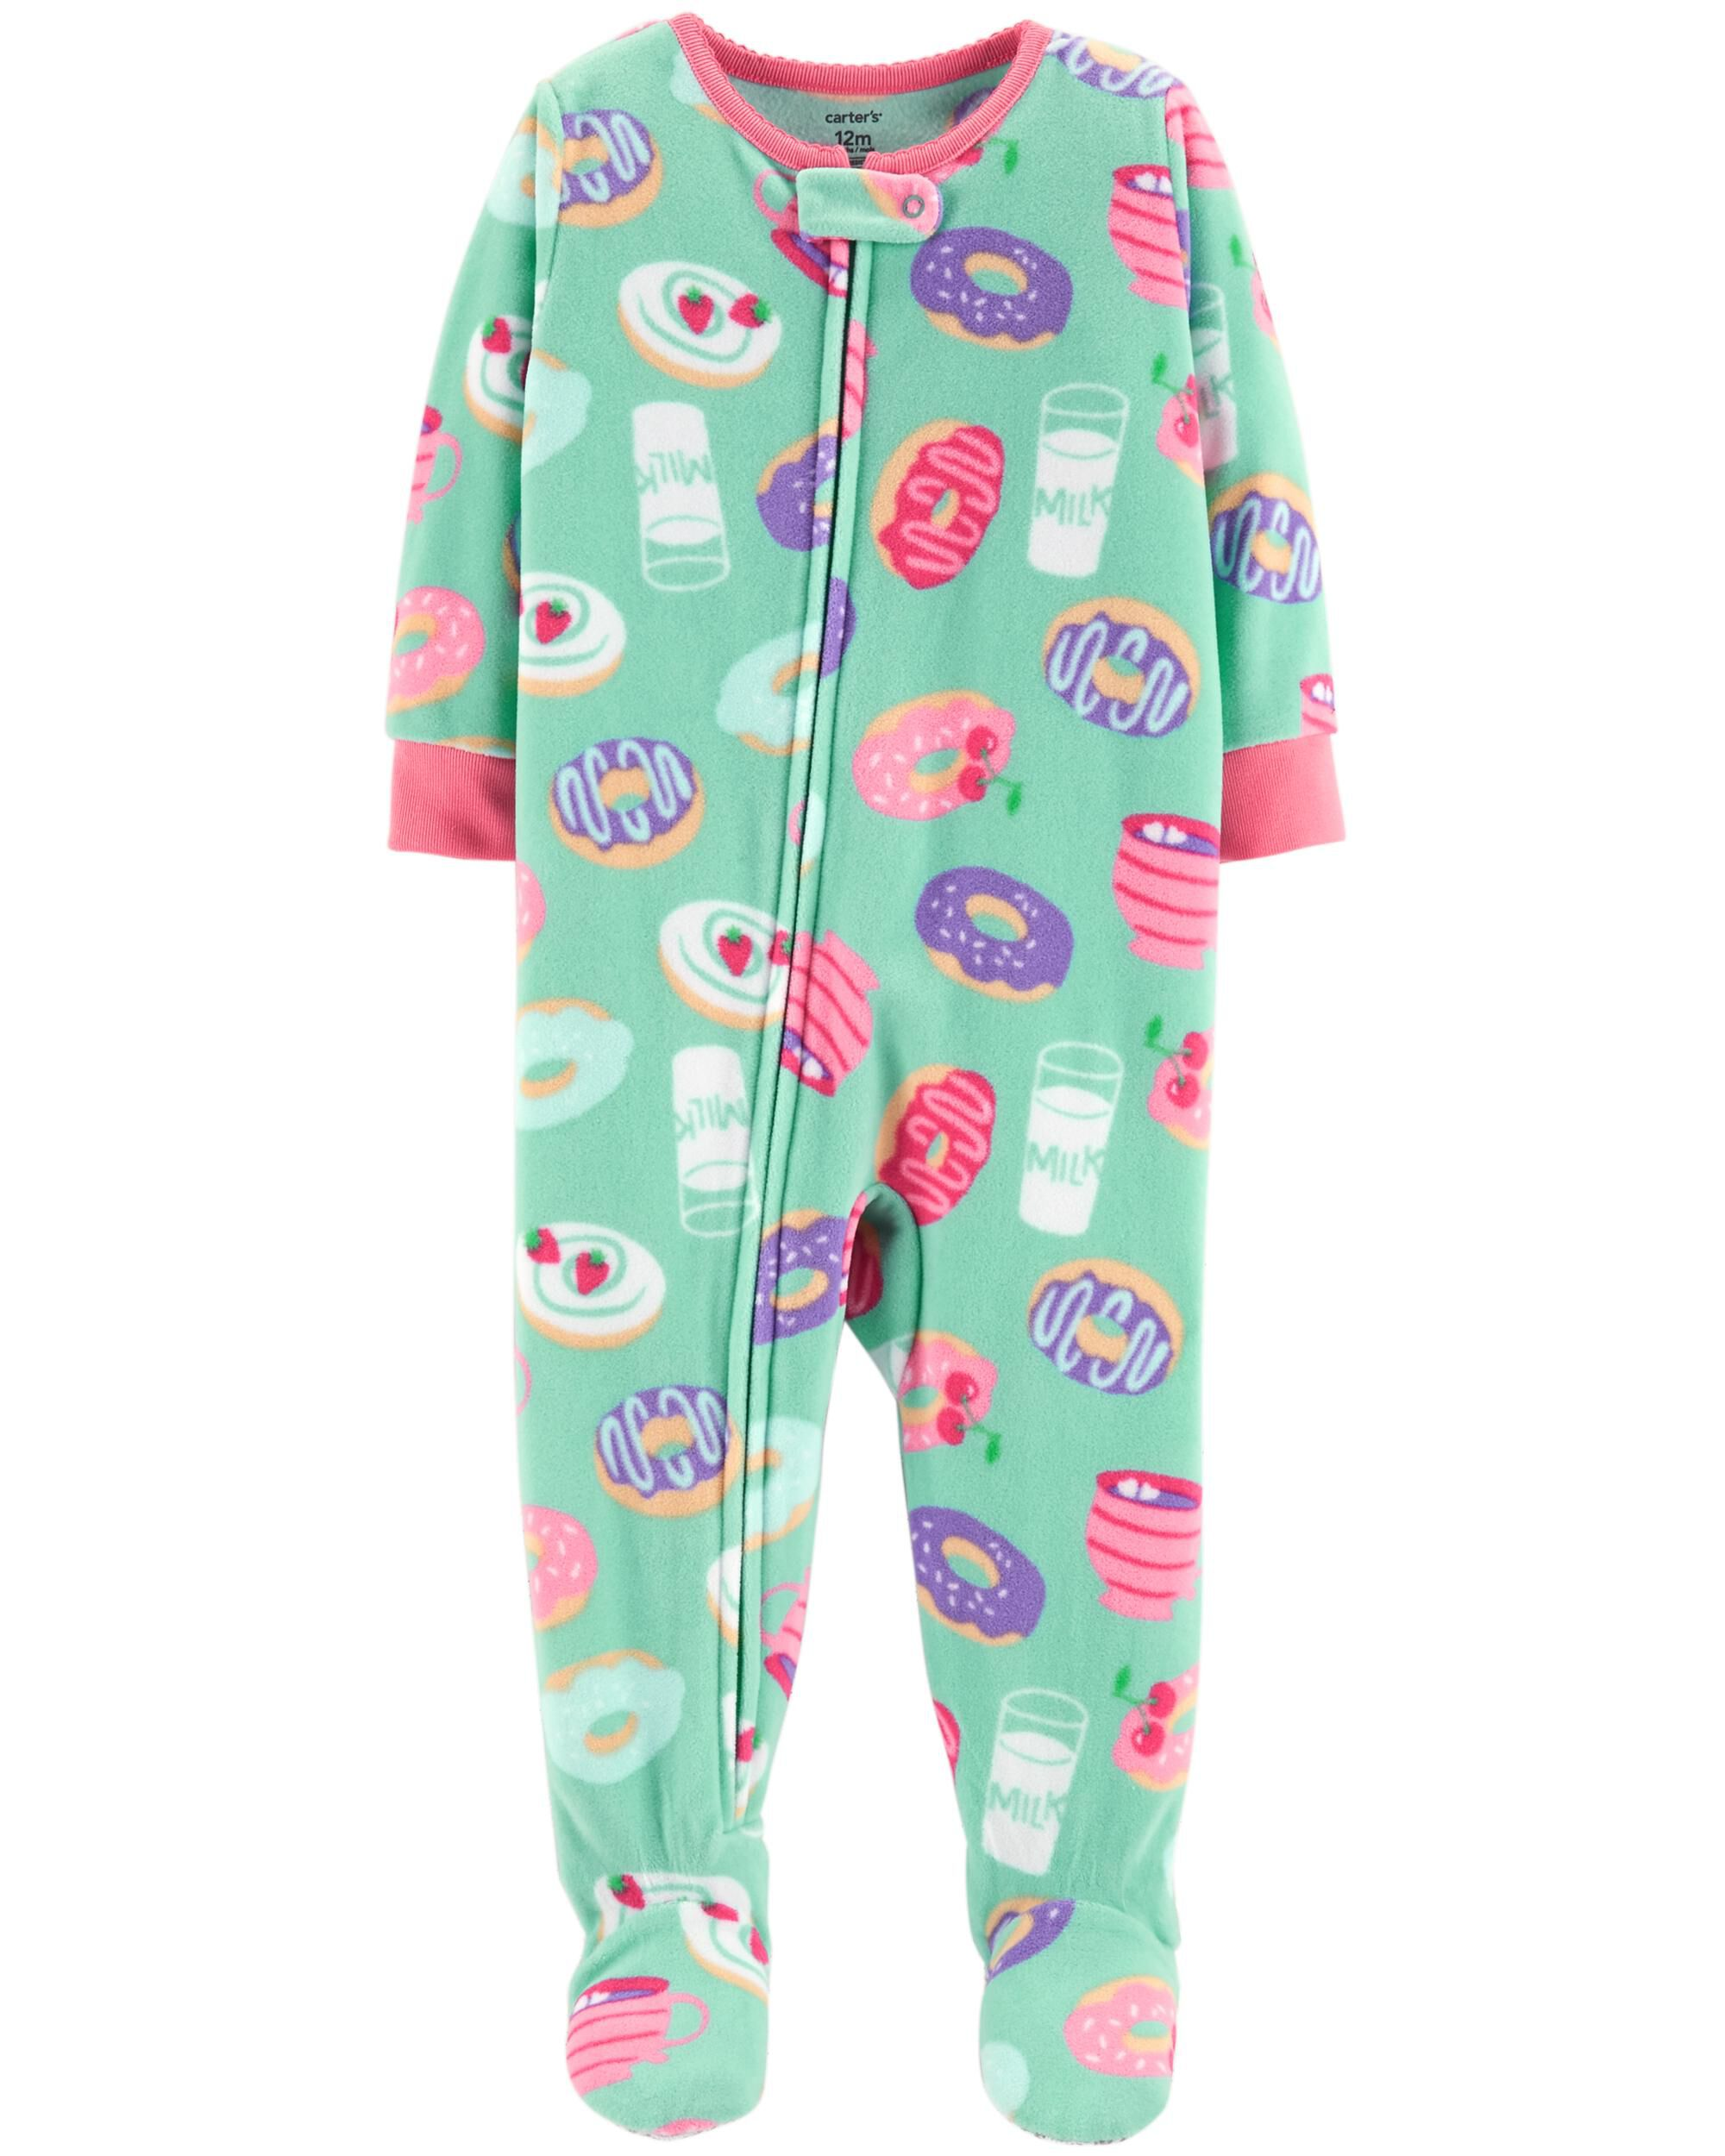 NWT New Carters Toddler Girl 2-Piece Fleece Pajama Set Top /& Bottoms 4T